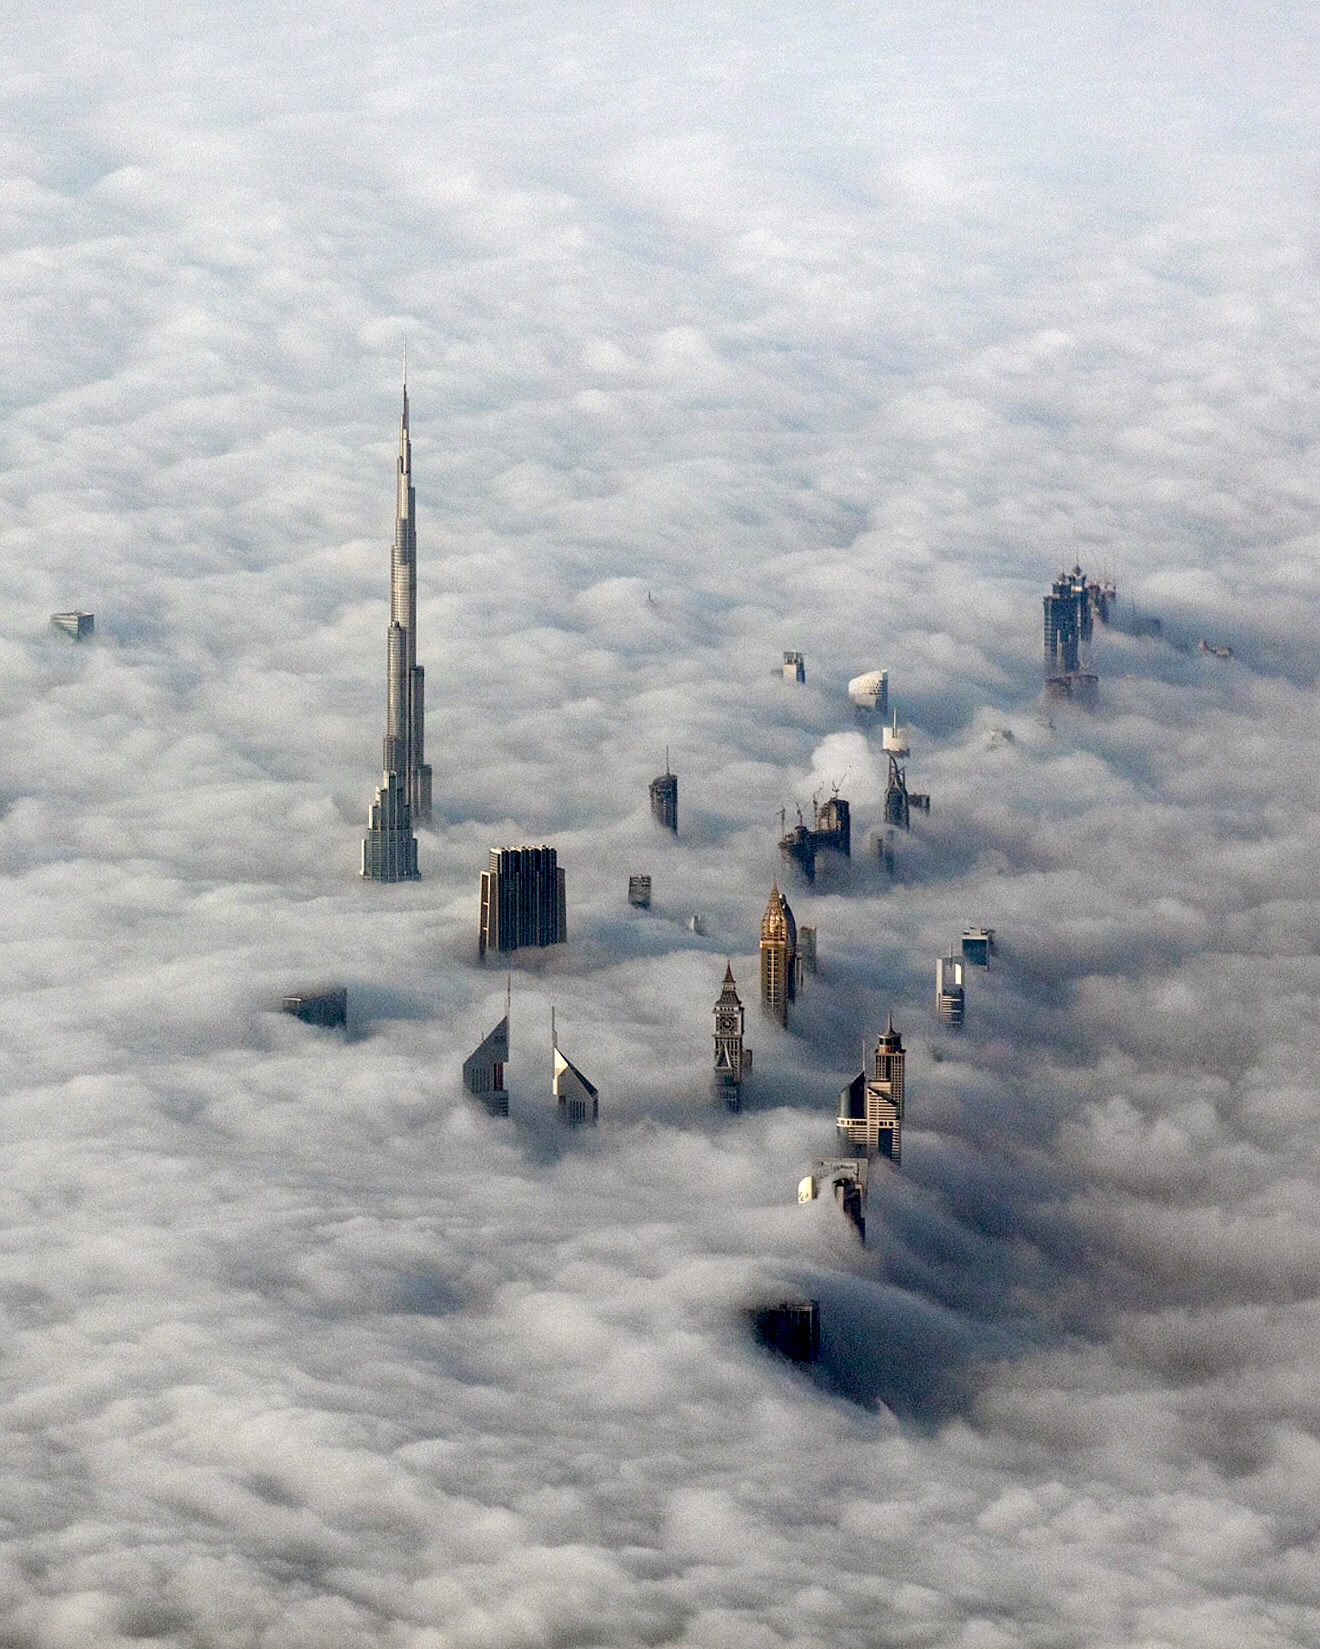 Check out this photograph of skyscrapers peeking through the clouds over Dubai. The city, located in the United Arab Emirates, has built more skyscrapers higher than 2/3 km, 1/3 km, or ¼ km than any other city on the planet. The Burj Khalifa, the world's tallest building at 829.8 meters (2,722 feet), is visible at left in this shot.  Photograph by Carsten Witte